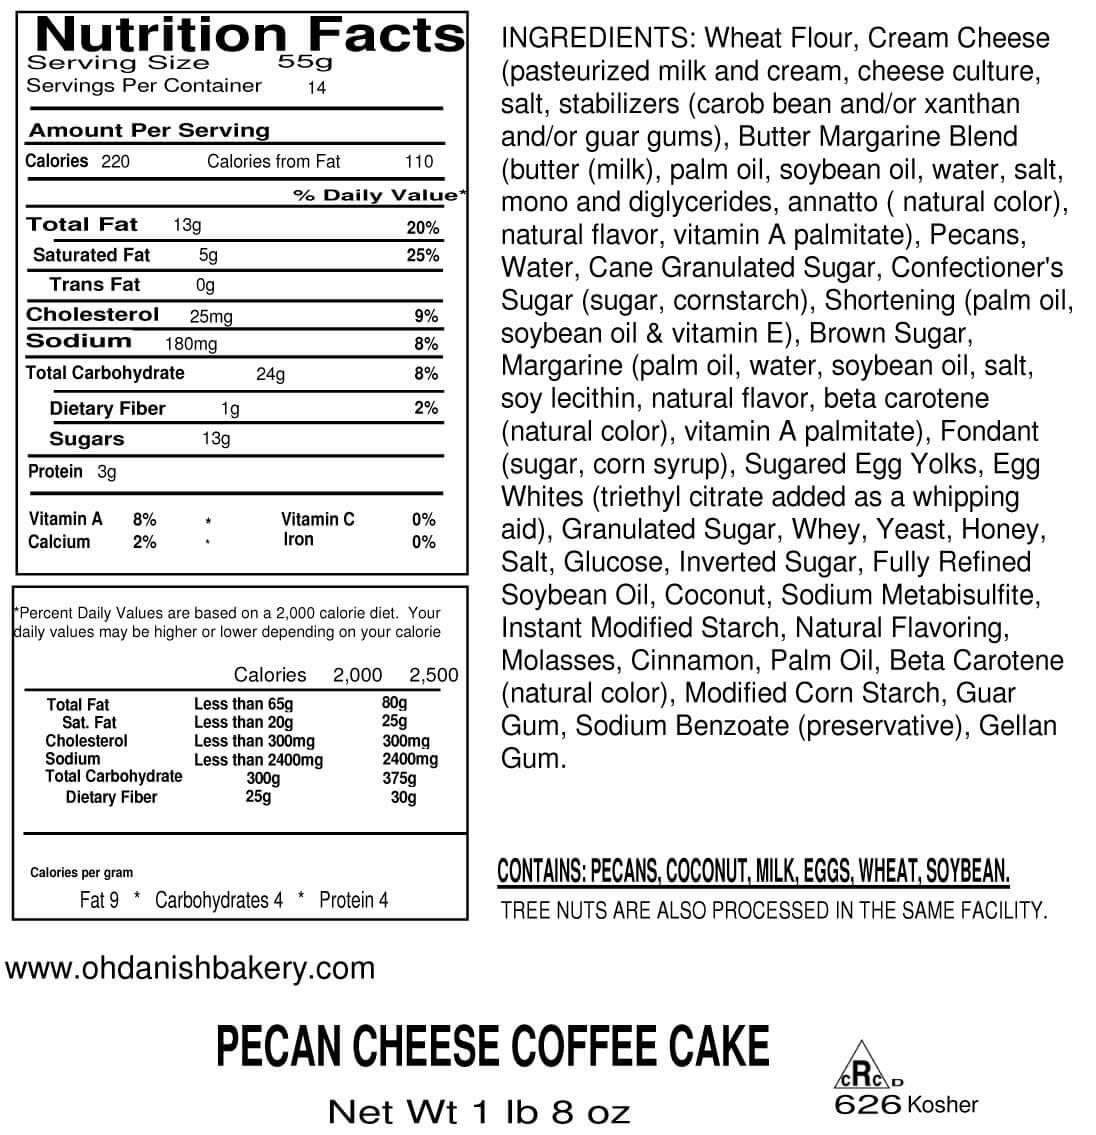 Nutritional Label for Pecan Cheese Coffee Cake